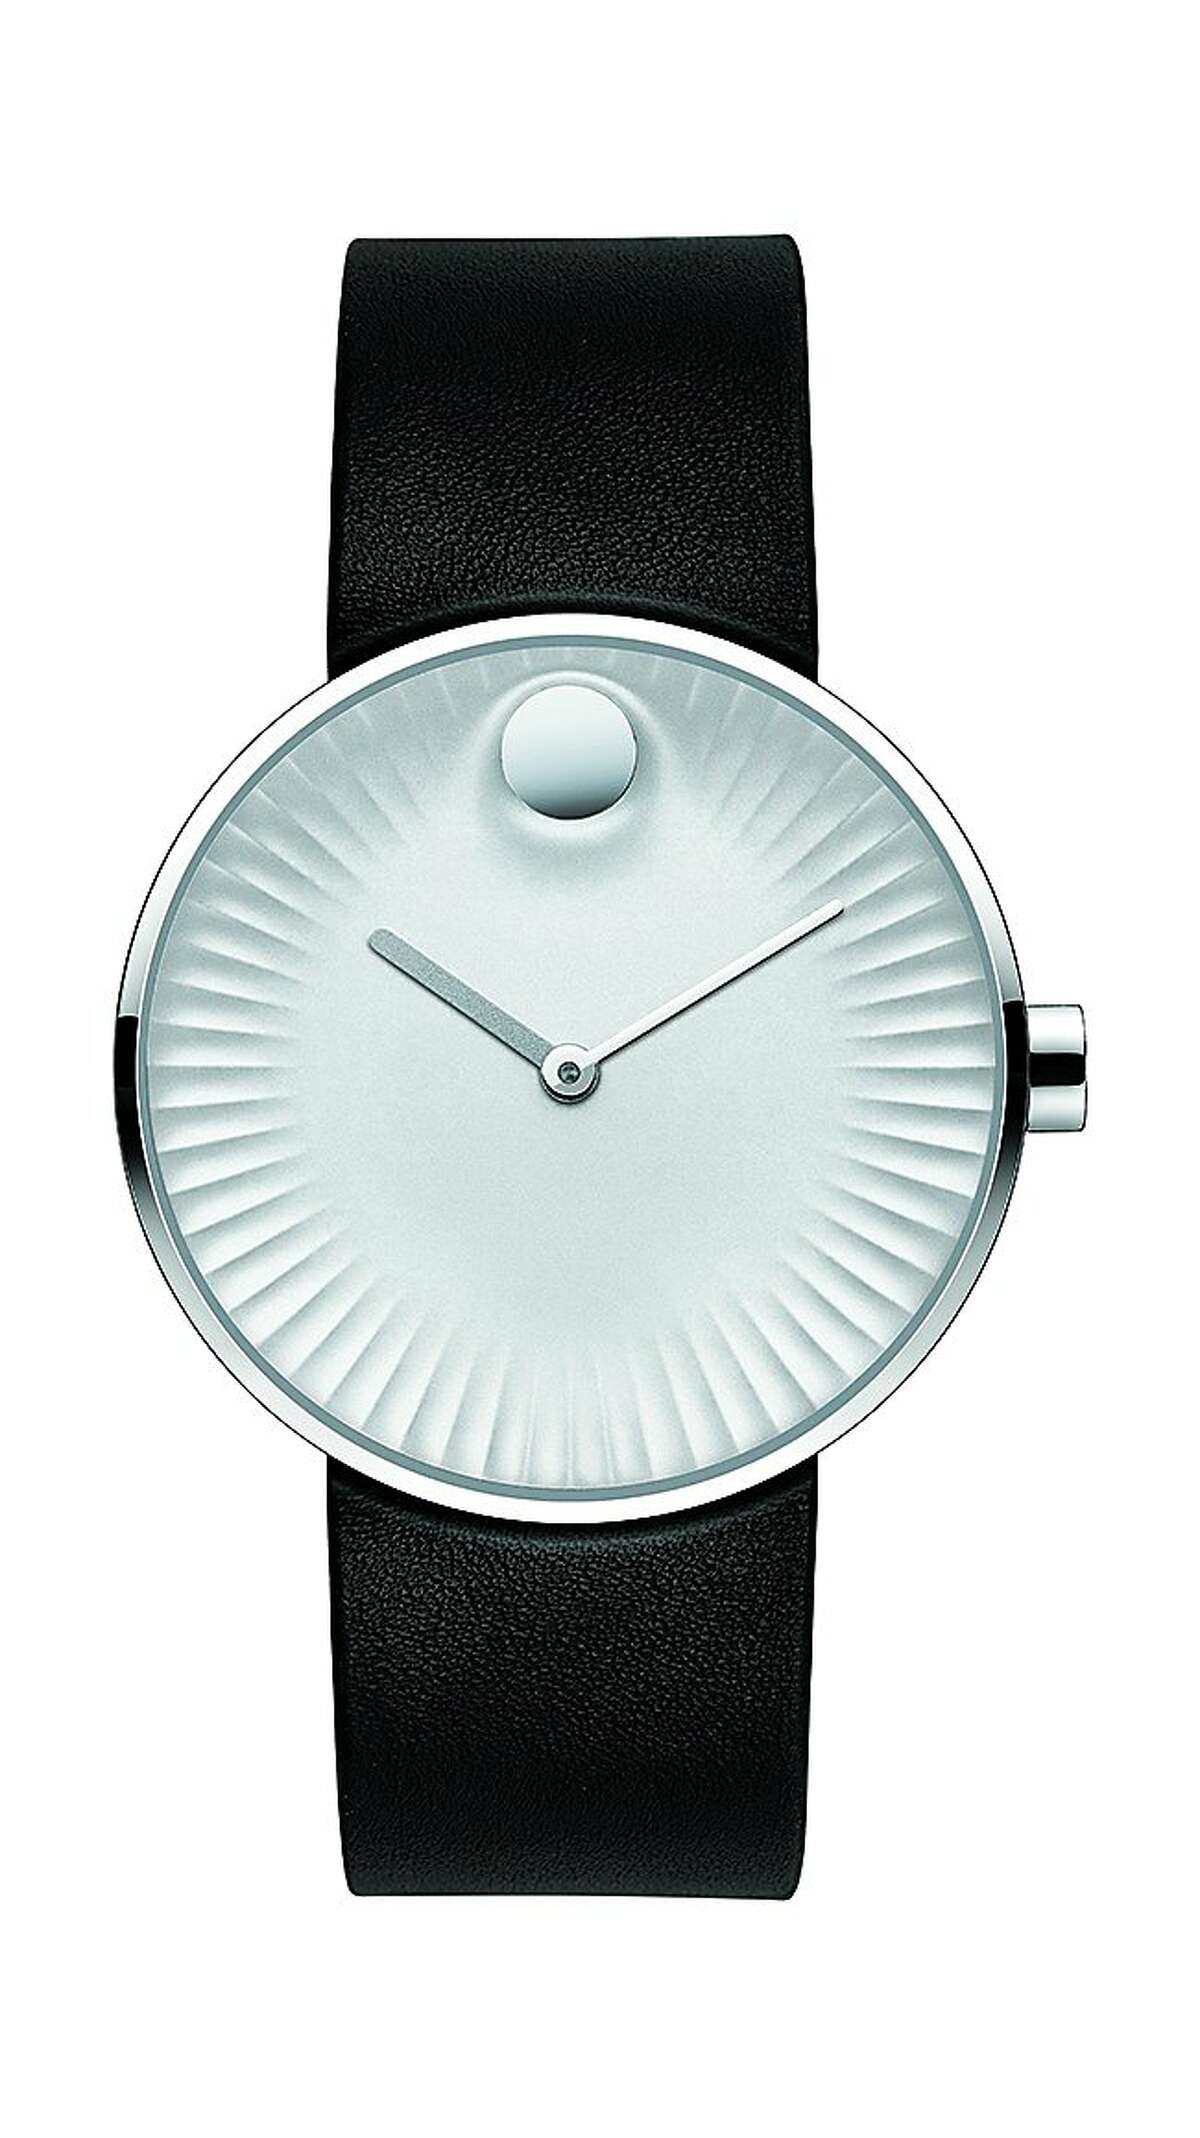 Swiss watchmaker Movado and industrial designer Yves Behar have collaborated on a new timepiece collection called Movado Edge.(( FOLLOWED BY INDIVIDUAL DETAILS BELOW.)) Name: Movado Edge SKU: 3680001 Materials: 40 mm polished stainless steel case, concave sandblasted silver-toned aluminum dial with raised polished tonal dot, sculpted ray-textured edge, matte silver-toned hour hand and polished silver-toned minute hand, black rubber strap with polished stainless steel tongue buckle. Price: $495. Credit: Movado